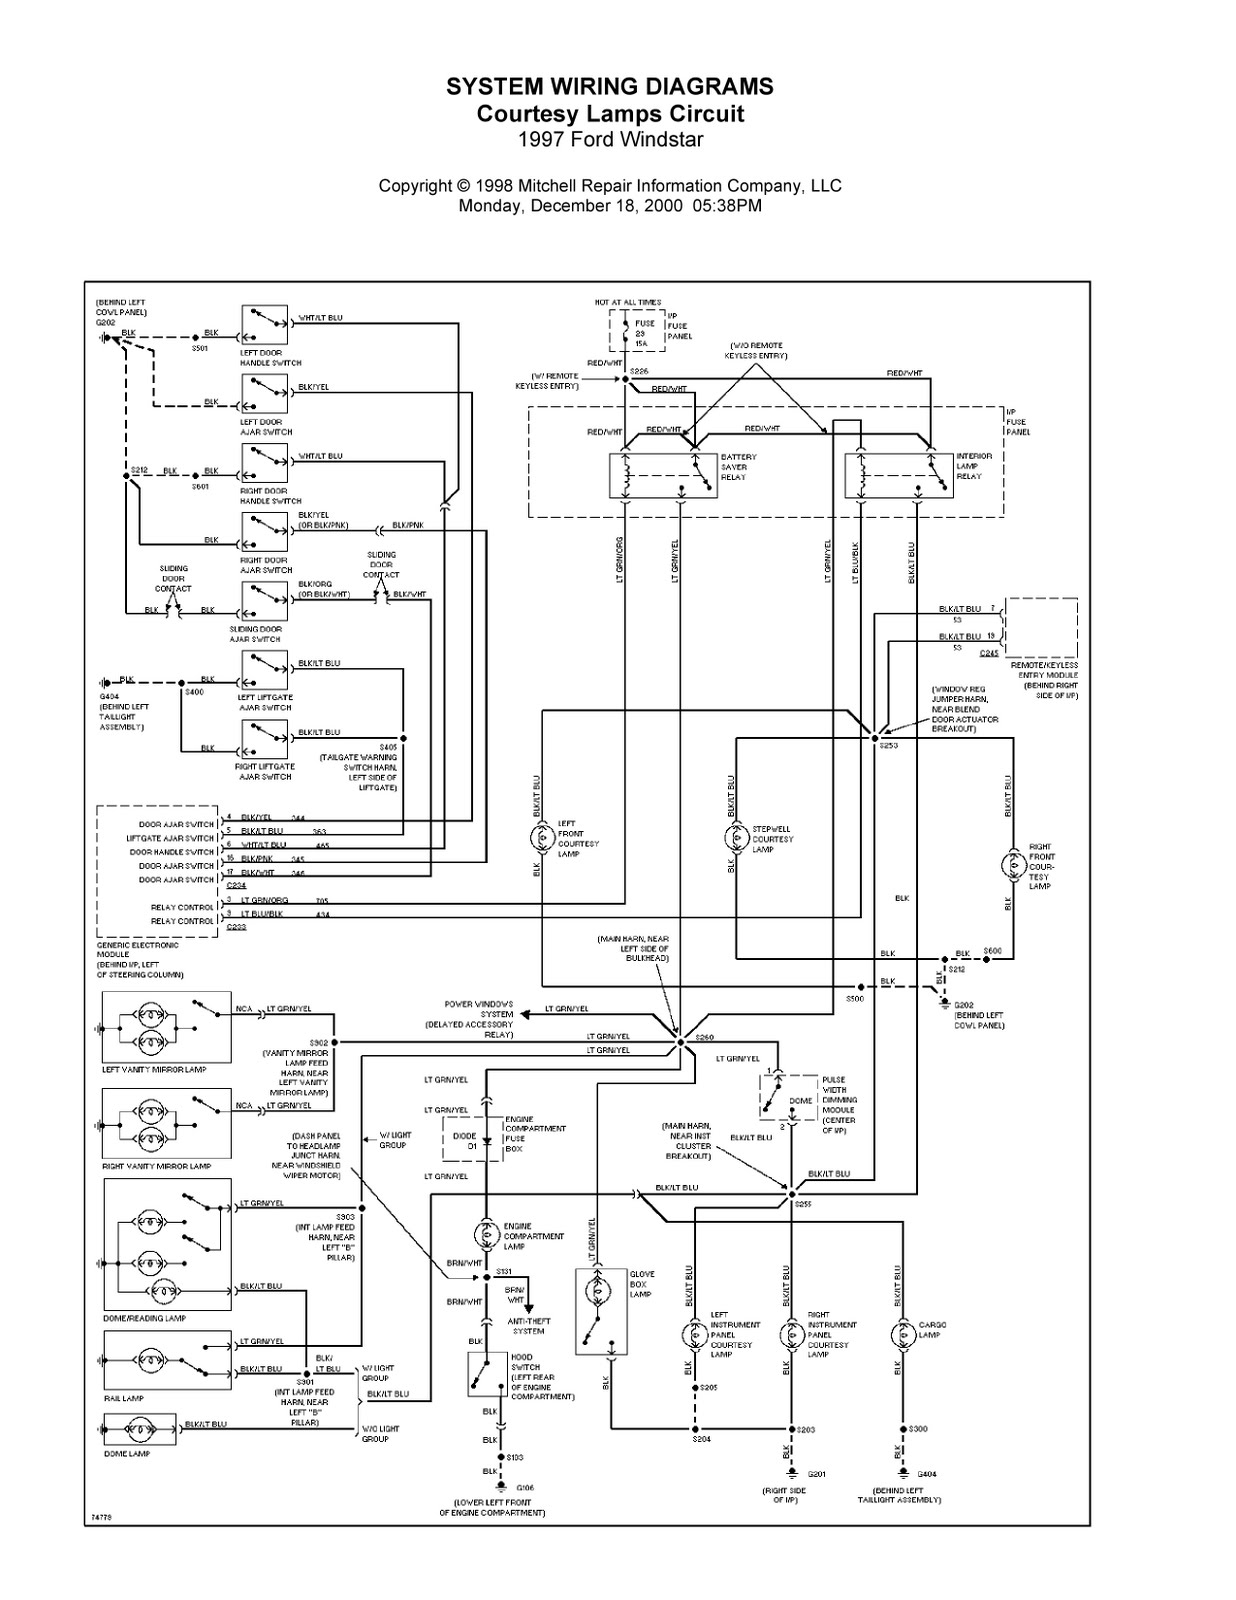 hight resolution of 1997 ford windstar complete system wiring diagrams 2000 ford windstar electrical diagram 2001 ford windstar electrical